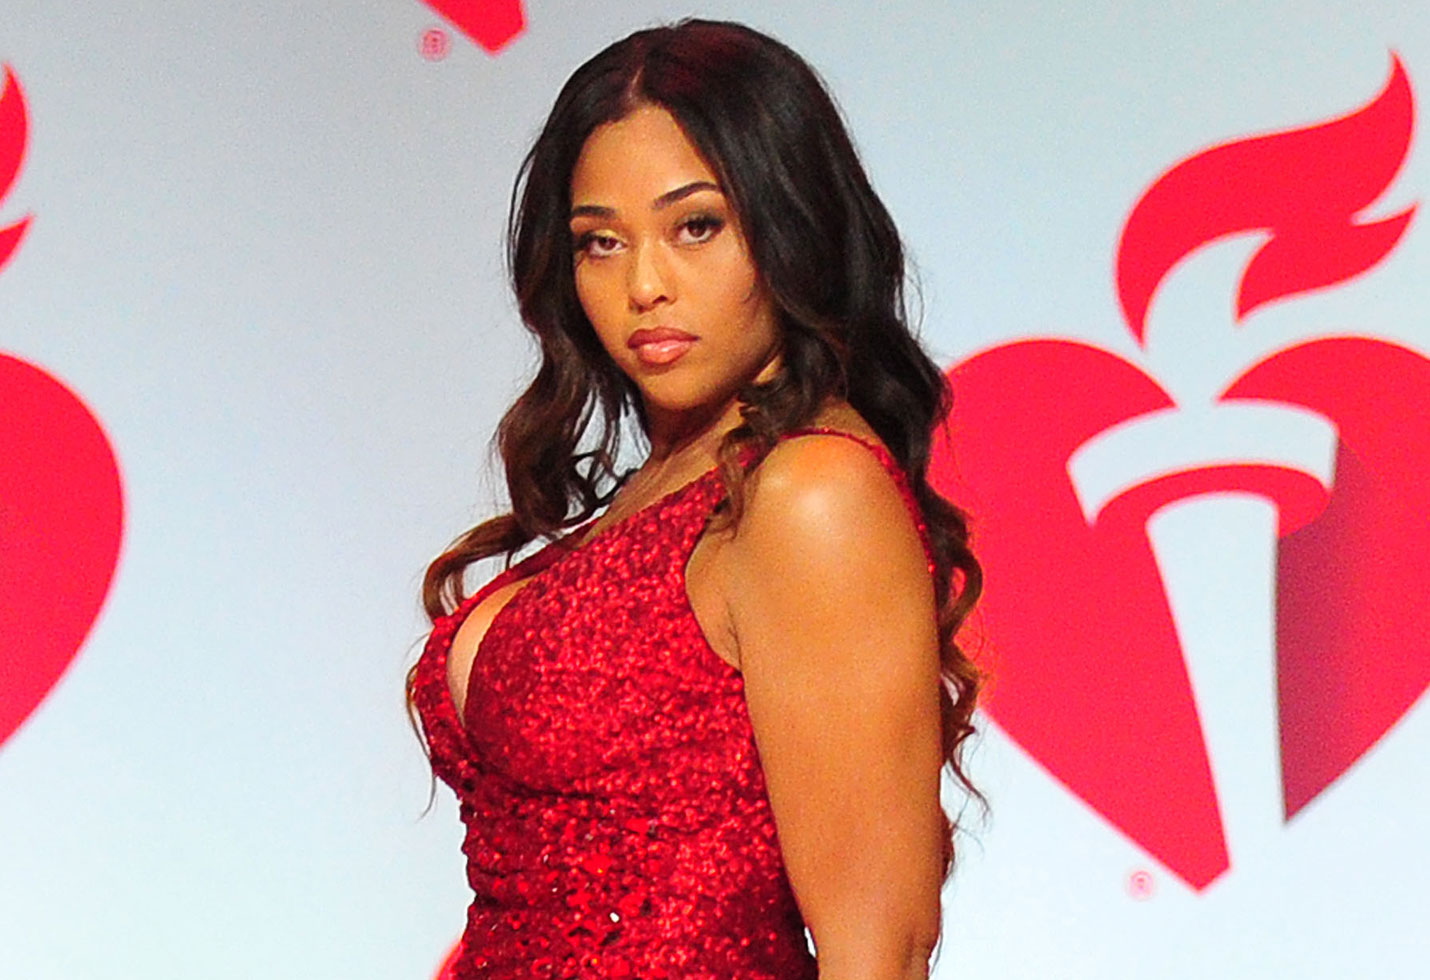 Jordyn Woods red table talk khloe kardashian tristan thompson cheating